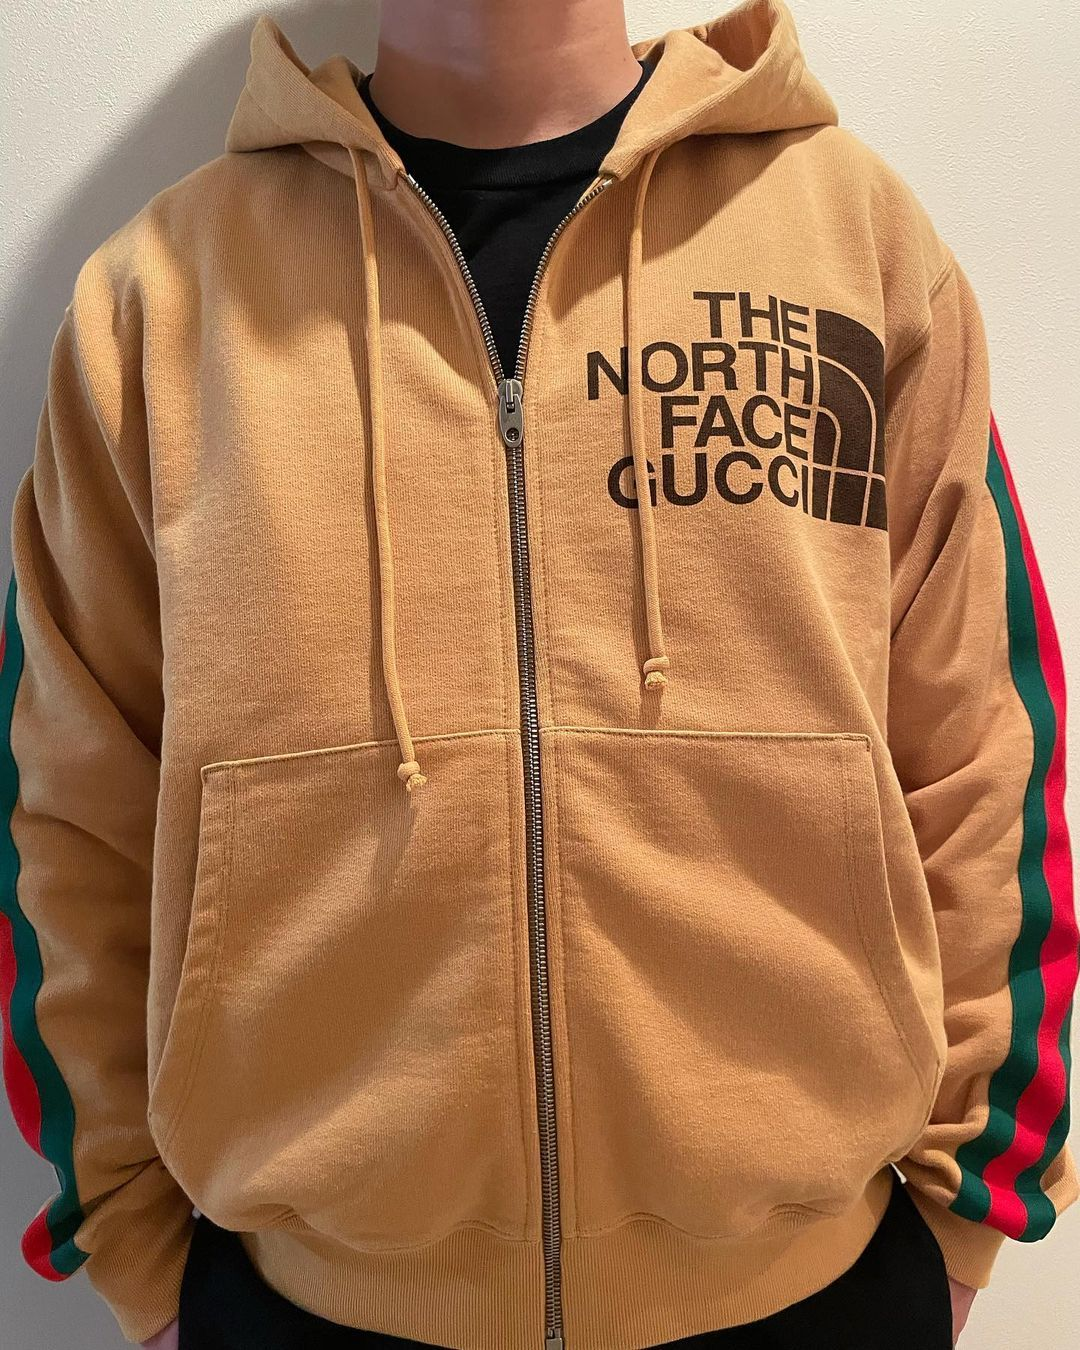 Pin By Atienza Chinoy On I Want I Need Pls Now In 2021 The North Face Mens Sweatshirts Thenorth Face [ 1350 x 1080 Pixel ]